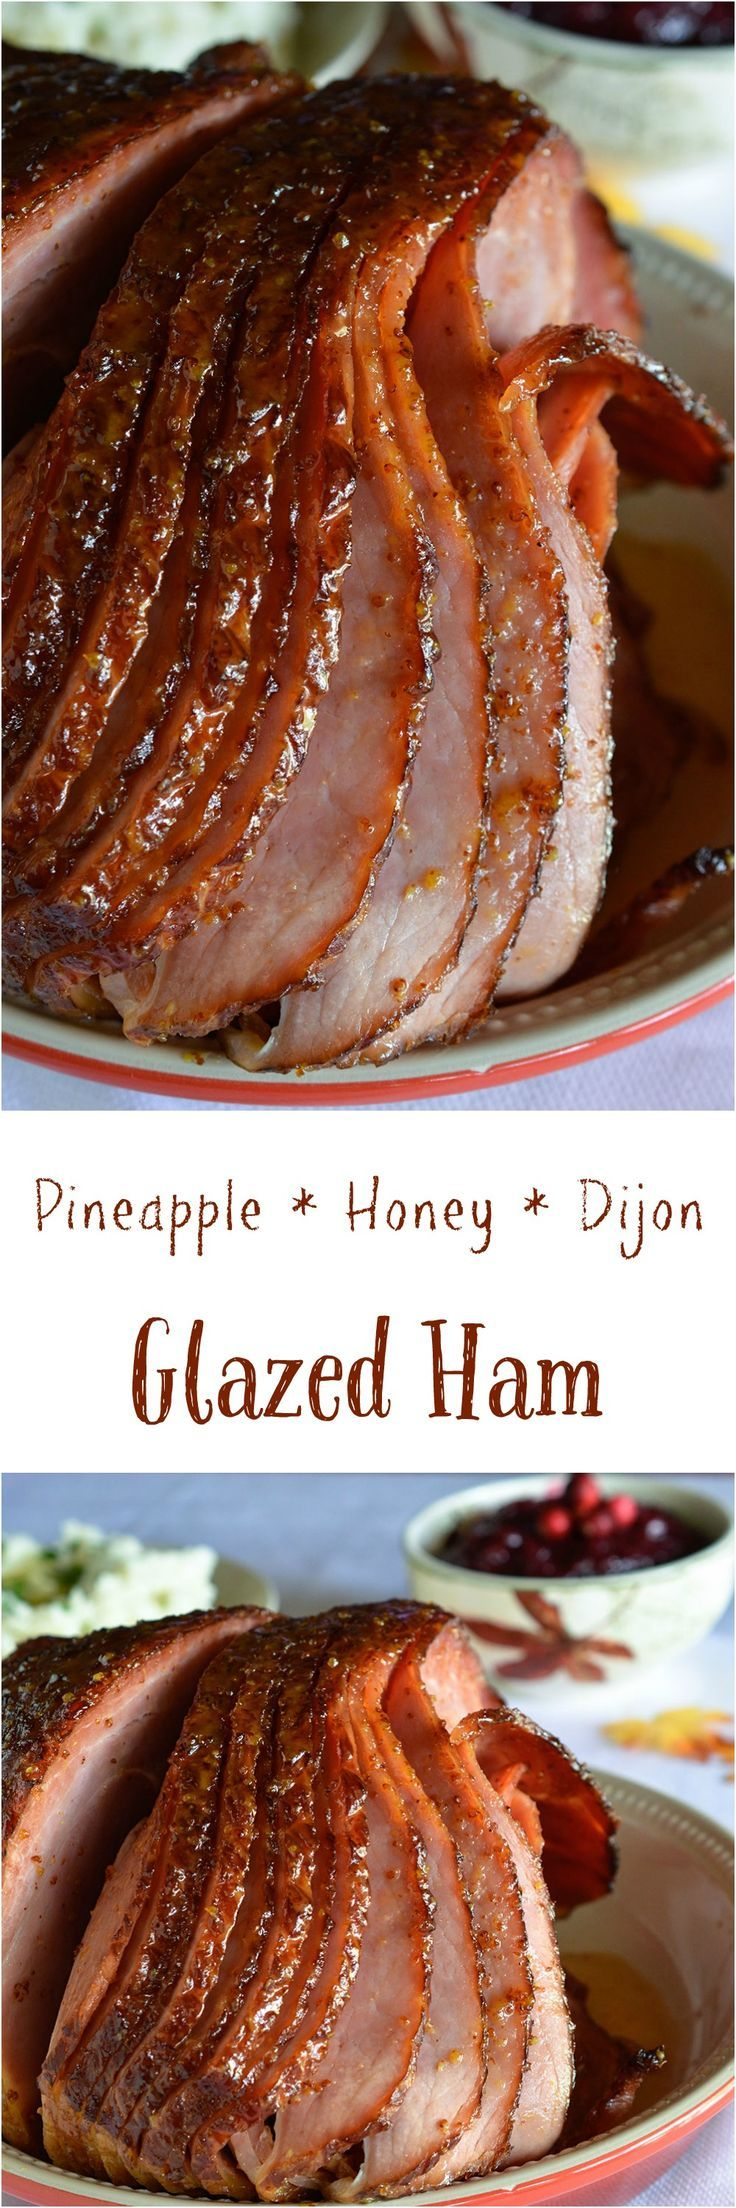 Pineapple Honey Glazed Ham Recipe - This is a simple and delicious holiday meal! @BlueServiceCrew ad HouseExperts